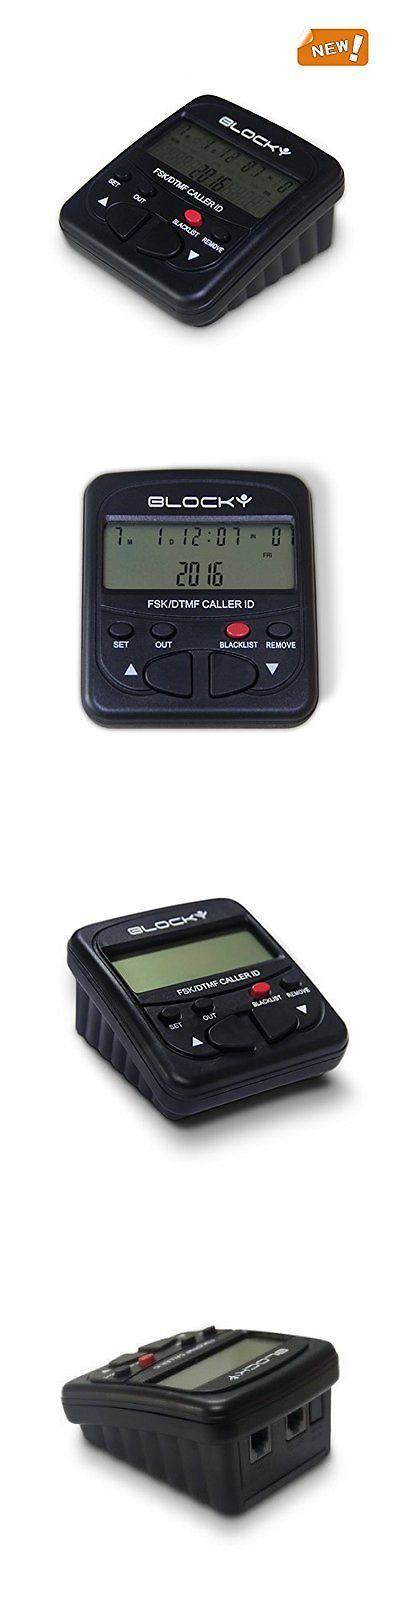 Caller ID Devices: Callany Phone Call Blocker With Caller Id Display- Block Unwanted Calls,Junk -> BUY IT NOW ONLY: $50.65 on eBay!